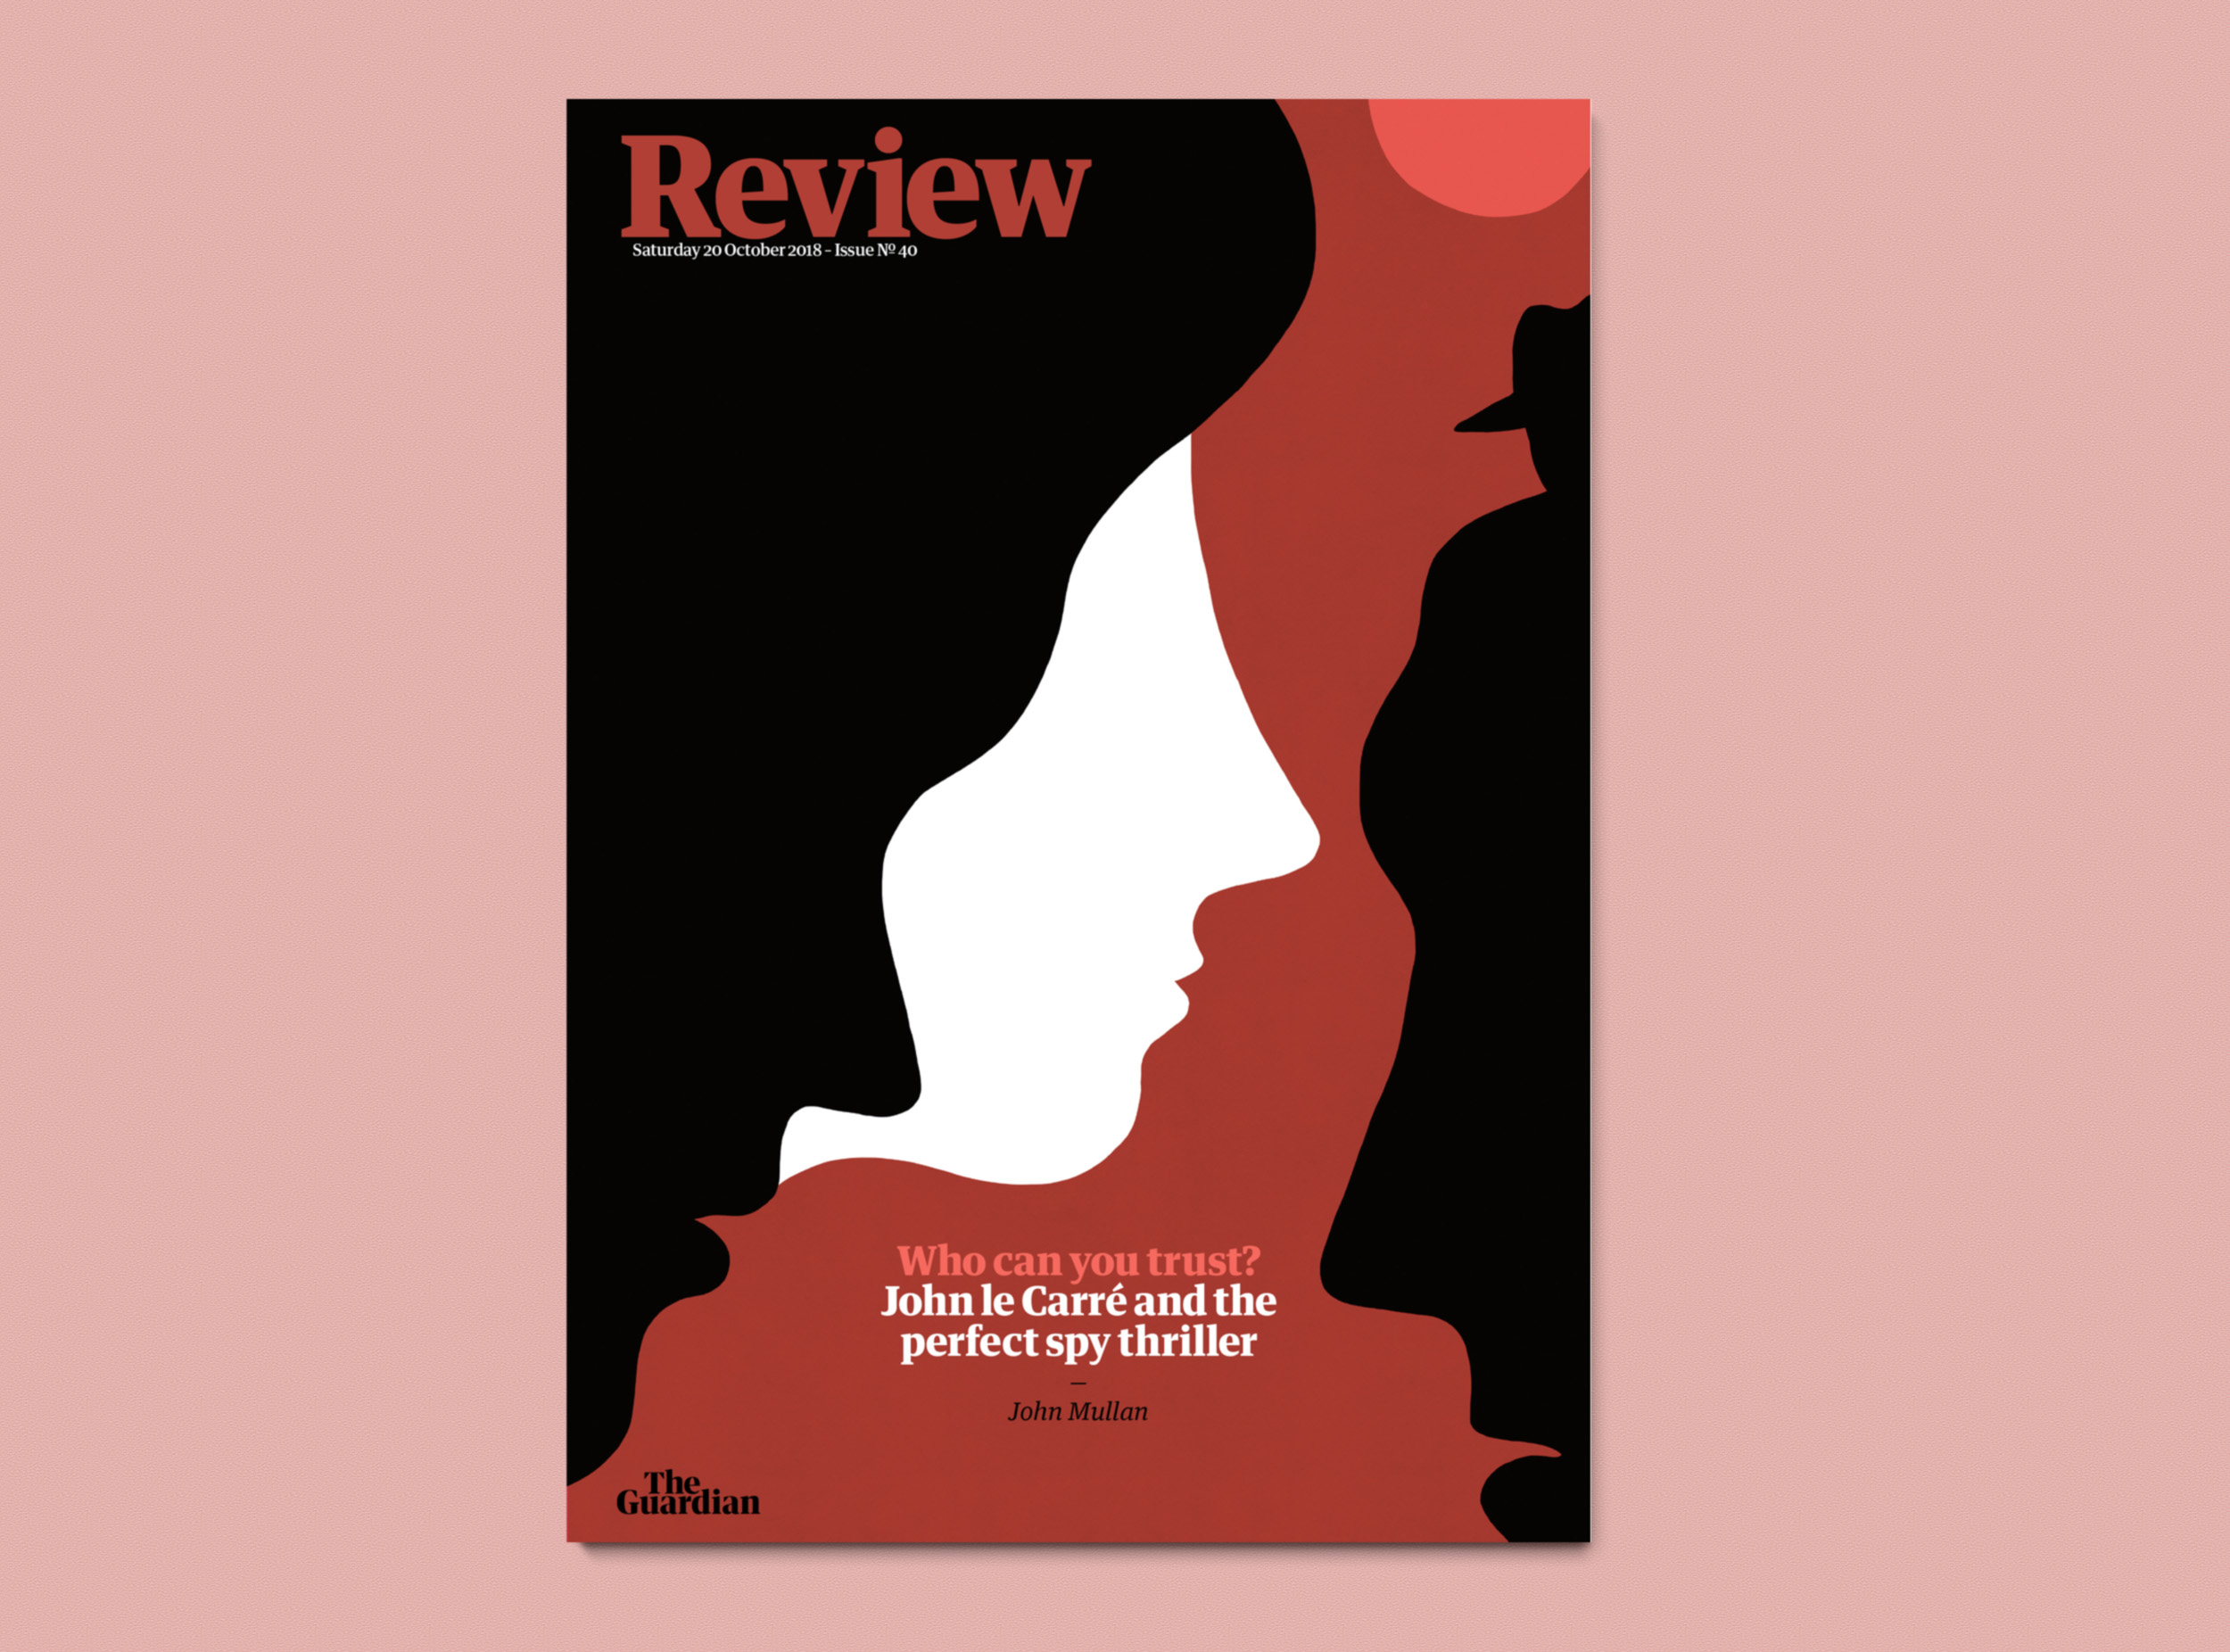 Joanna-Gniady-The-Guardian-Review40-cover-3